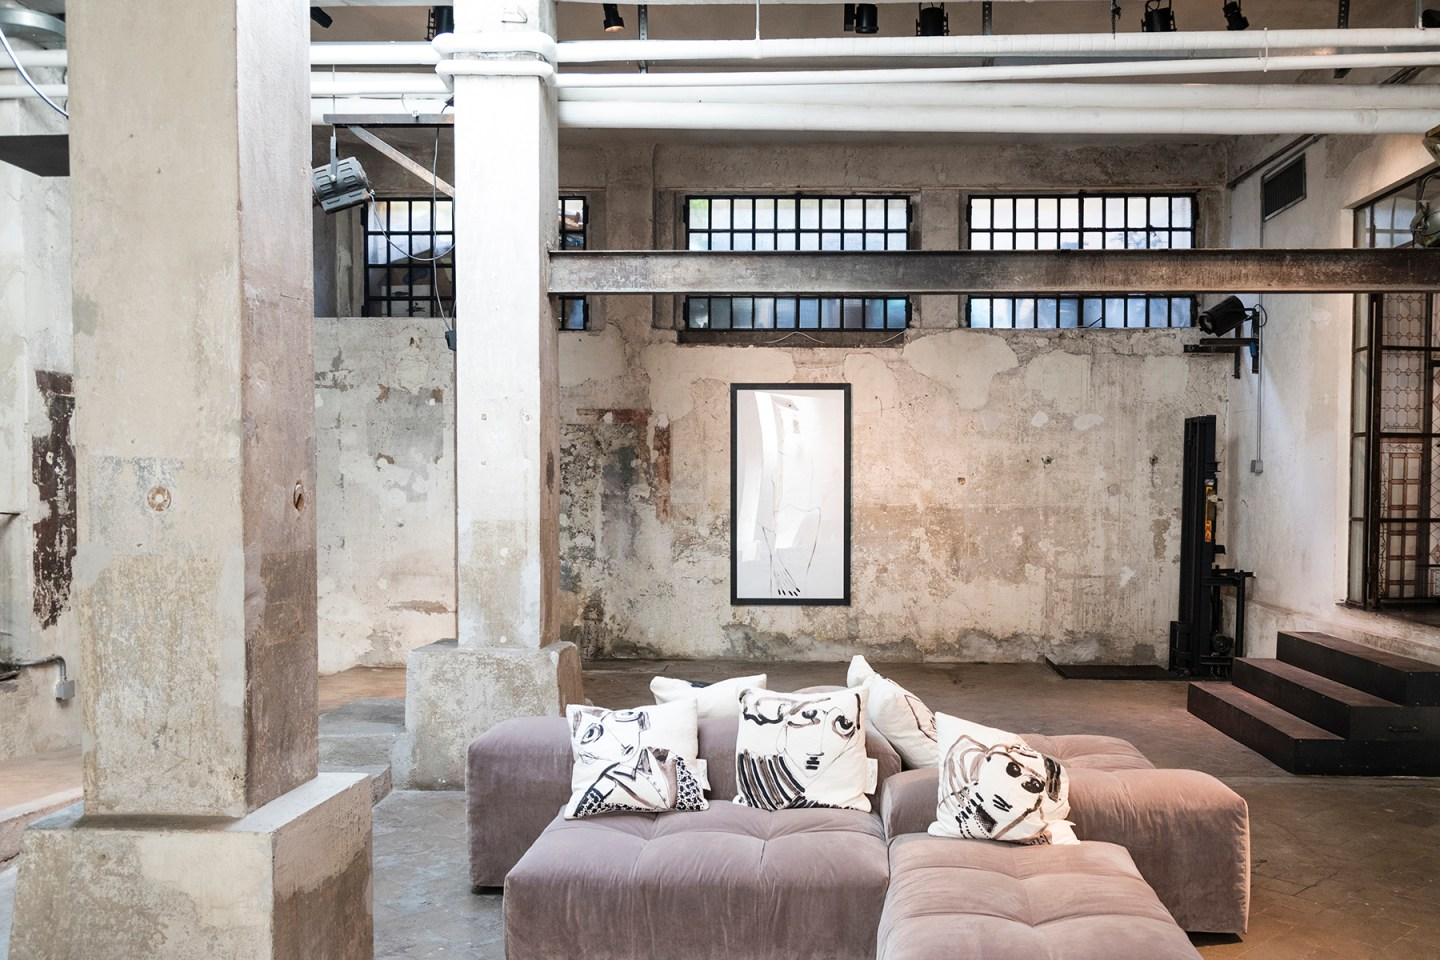 Milano Design Week 2018 - Nonostante Marras - ph ©Giulia Mandetta - Selected by La Chaise Bleue (lachaisebleue.com)